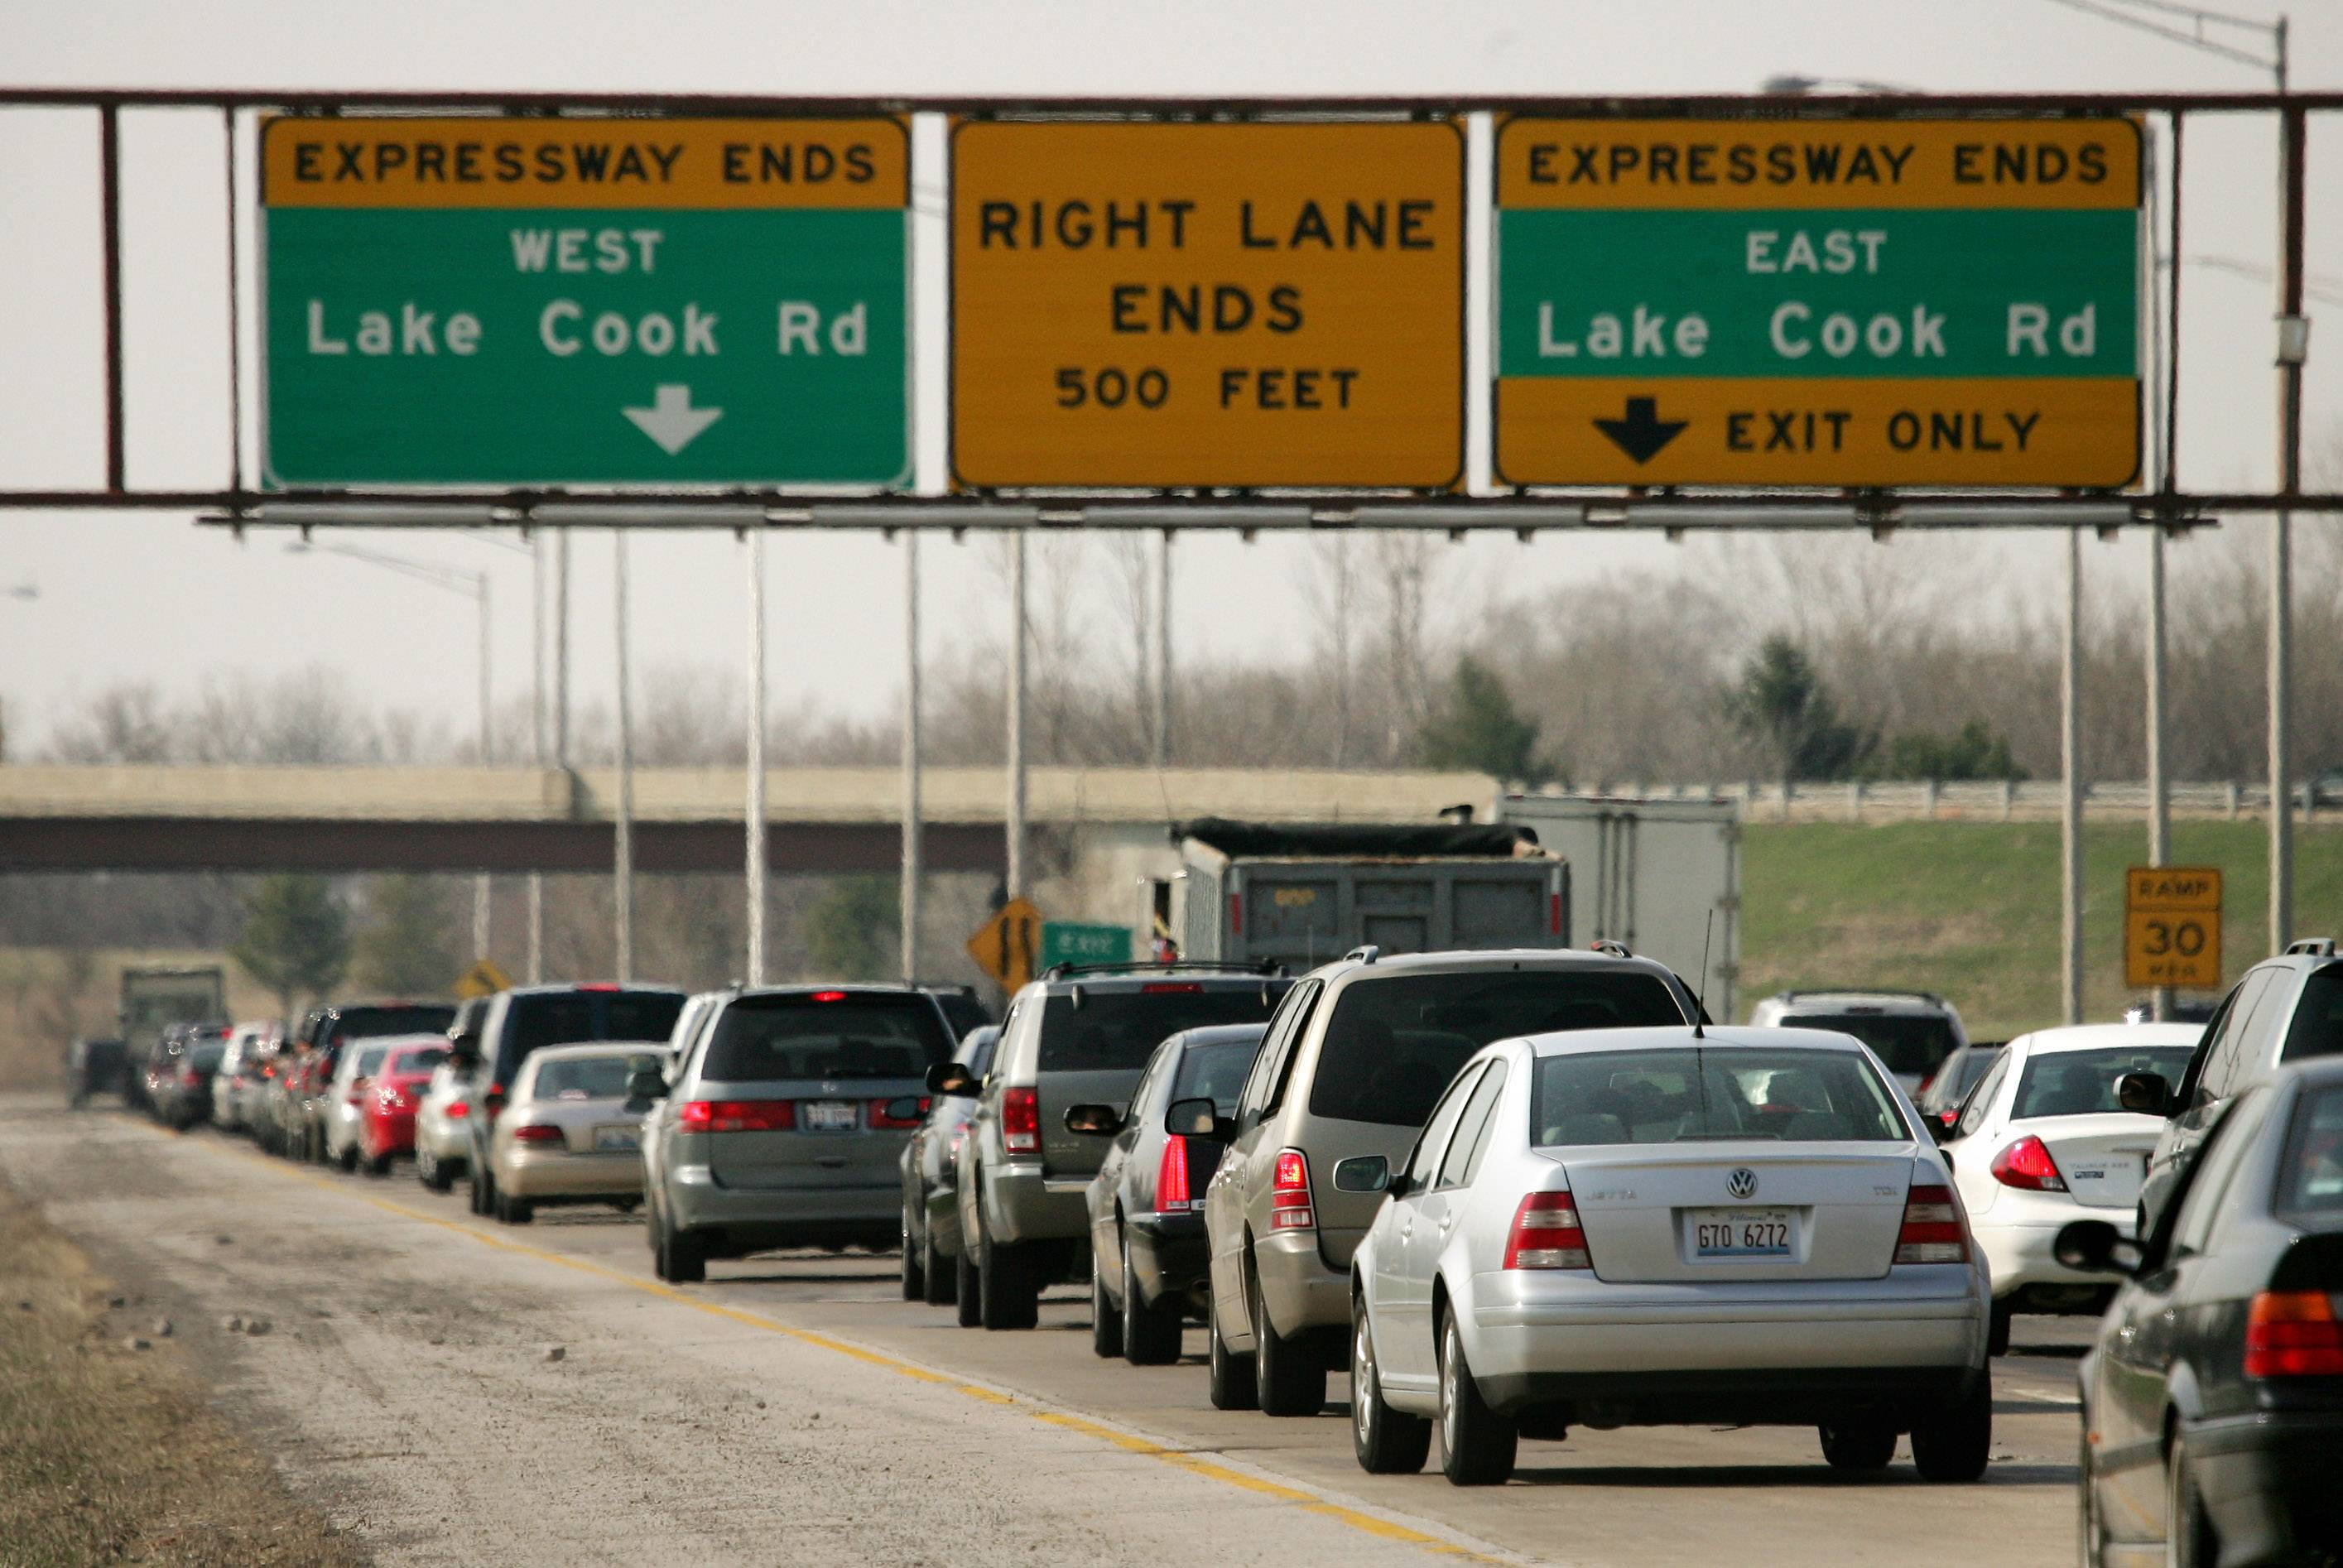 IDOT chief: Route 53 extension won't go to Rauner without 'significant support'